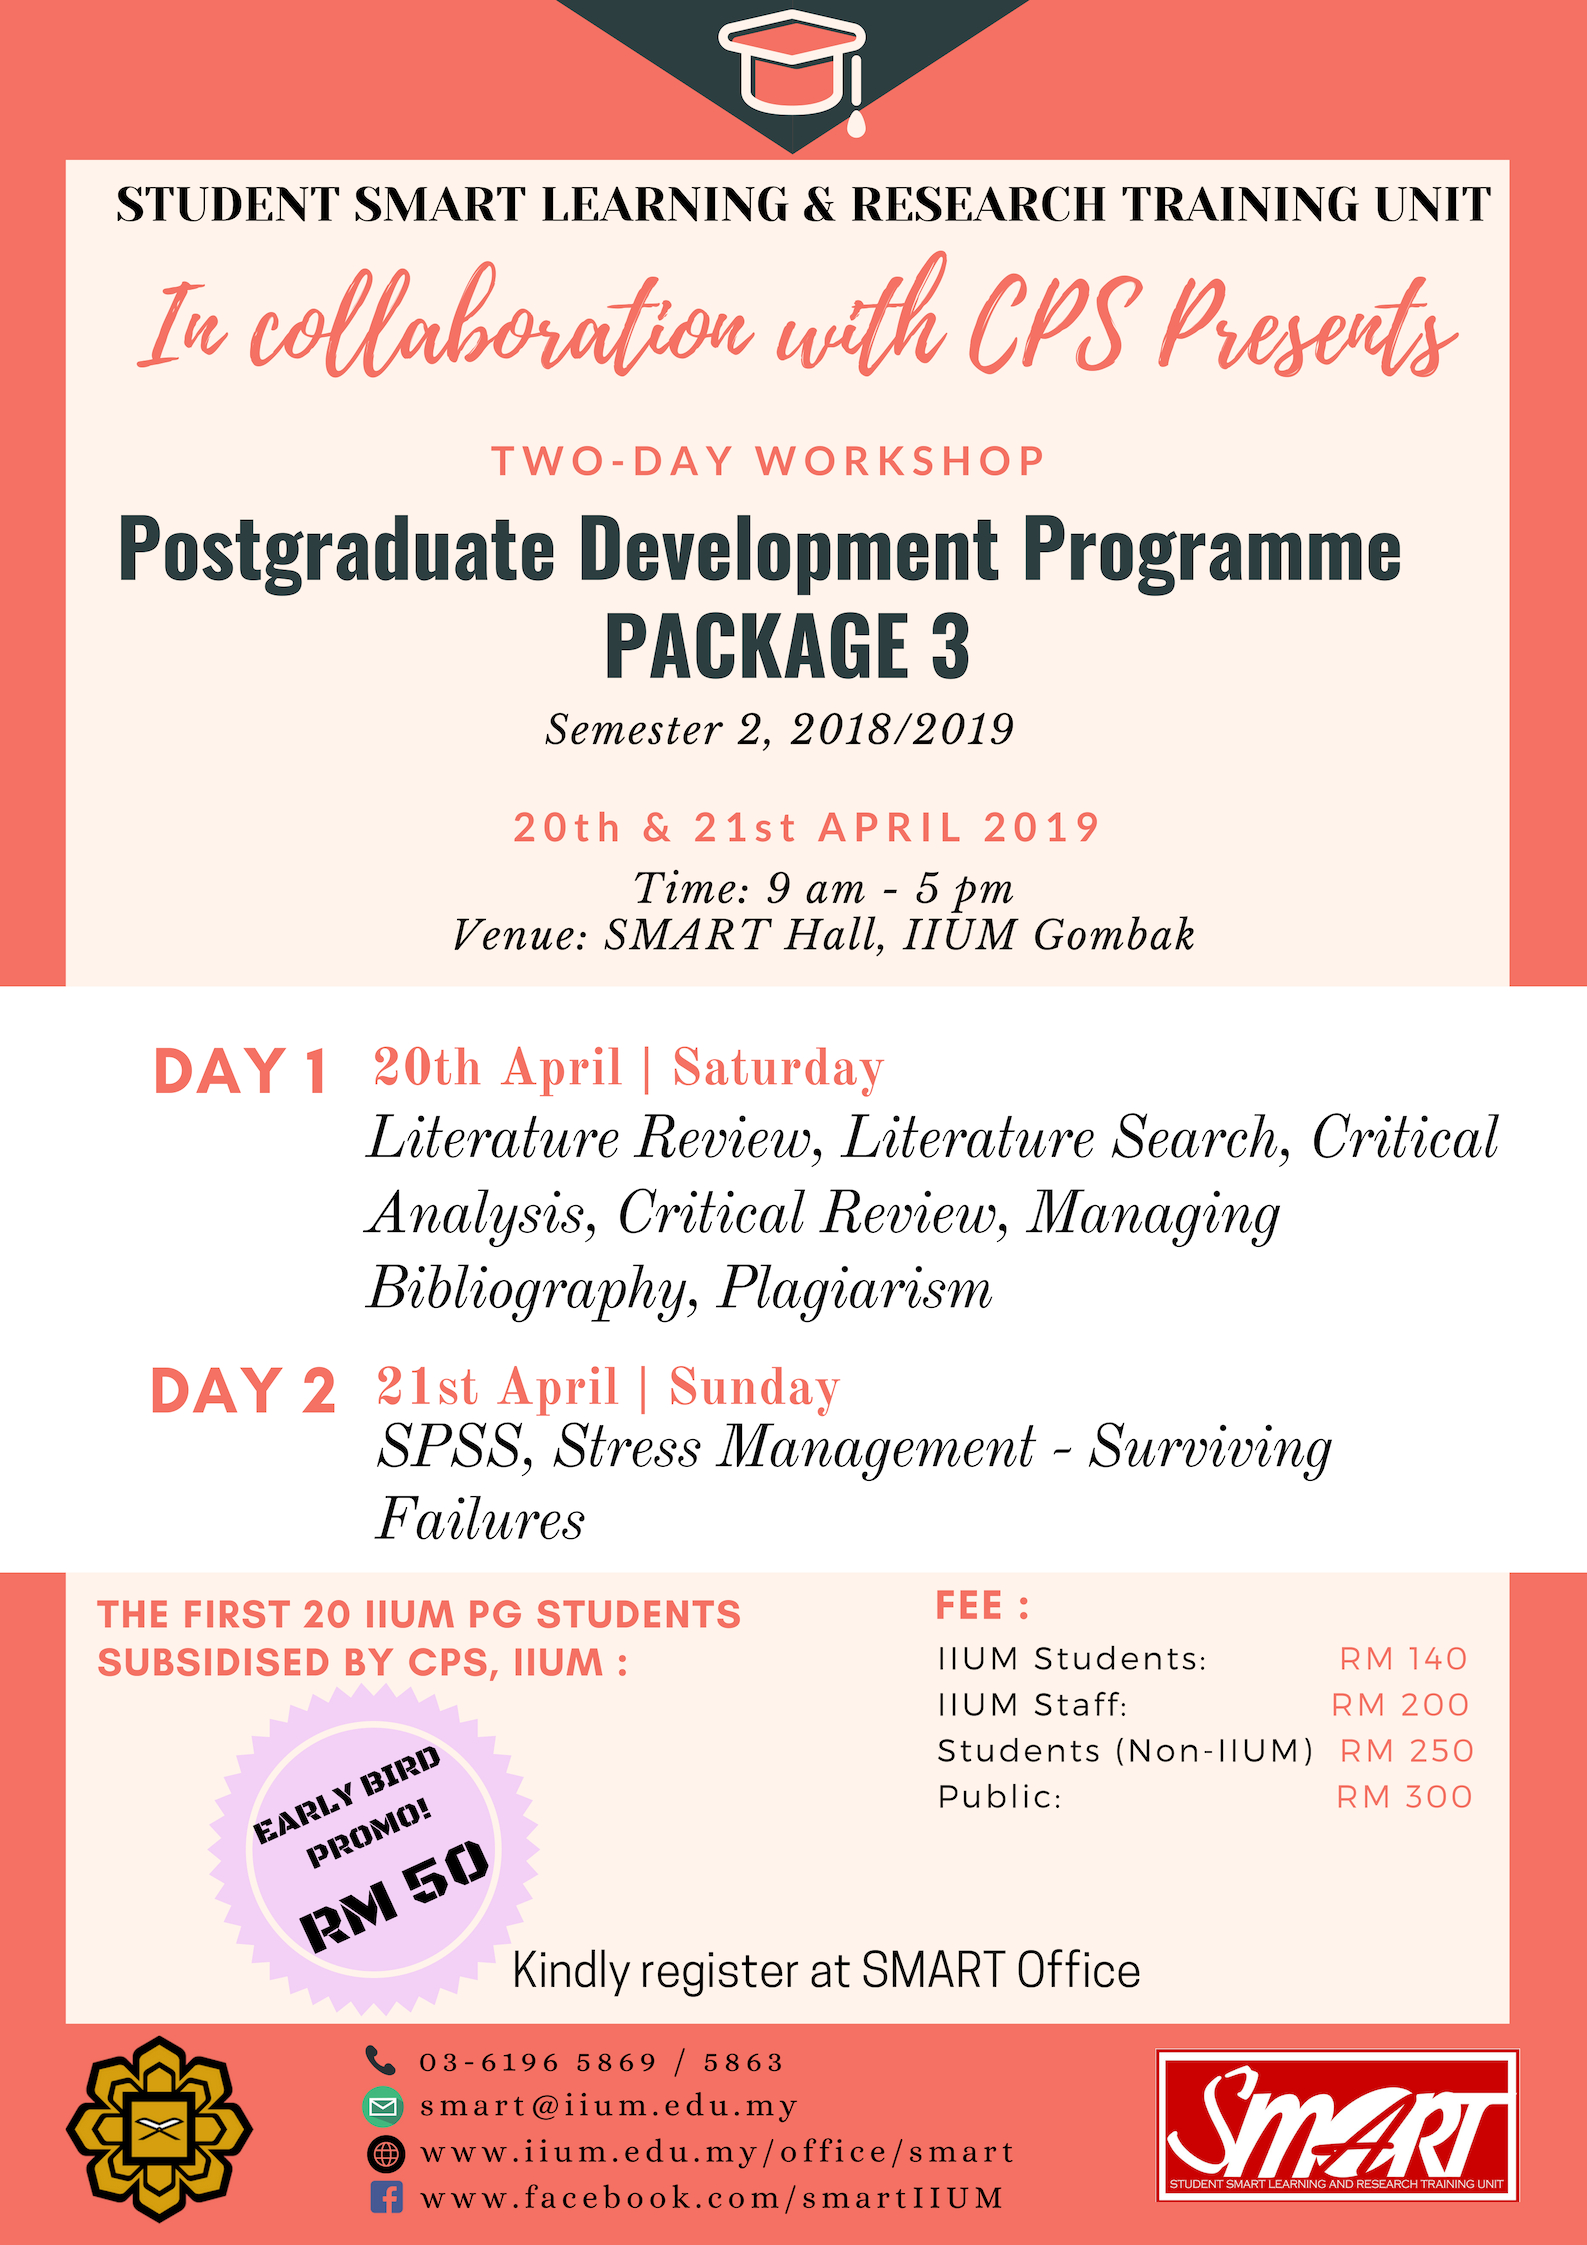 WORKSHOP : POSTGRADUATE DEVELOPMENT PROGRAMME PACKAGE 3